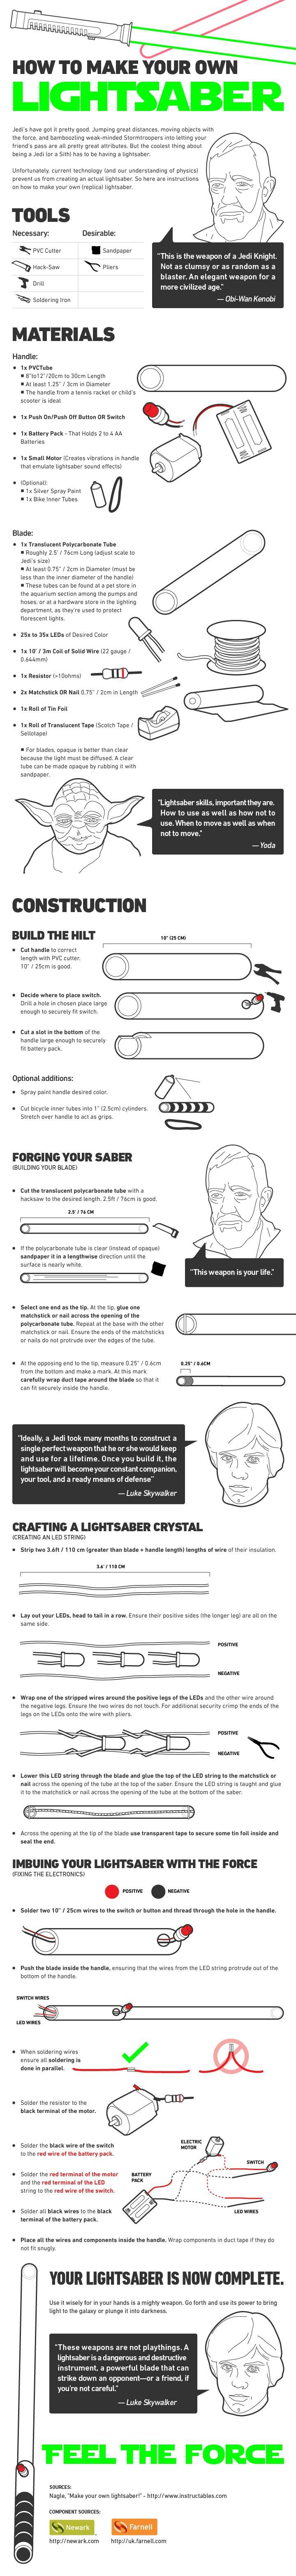 How to build your own lightsaber, this could come in handy someday.